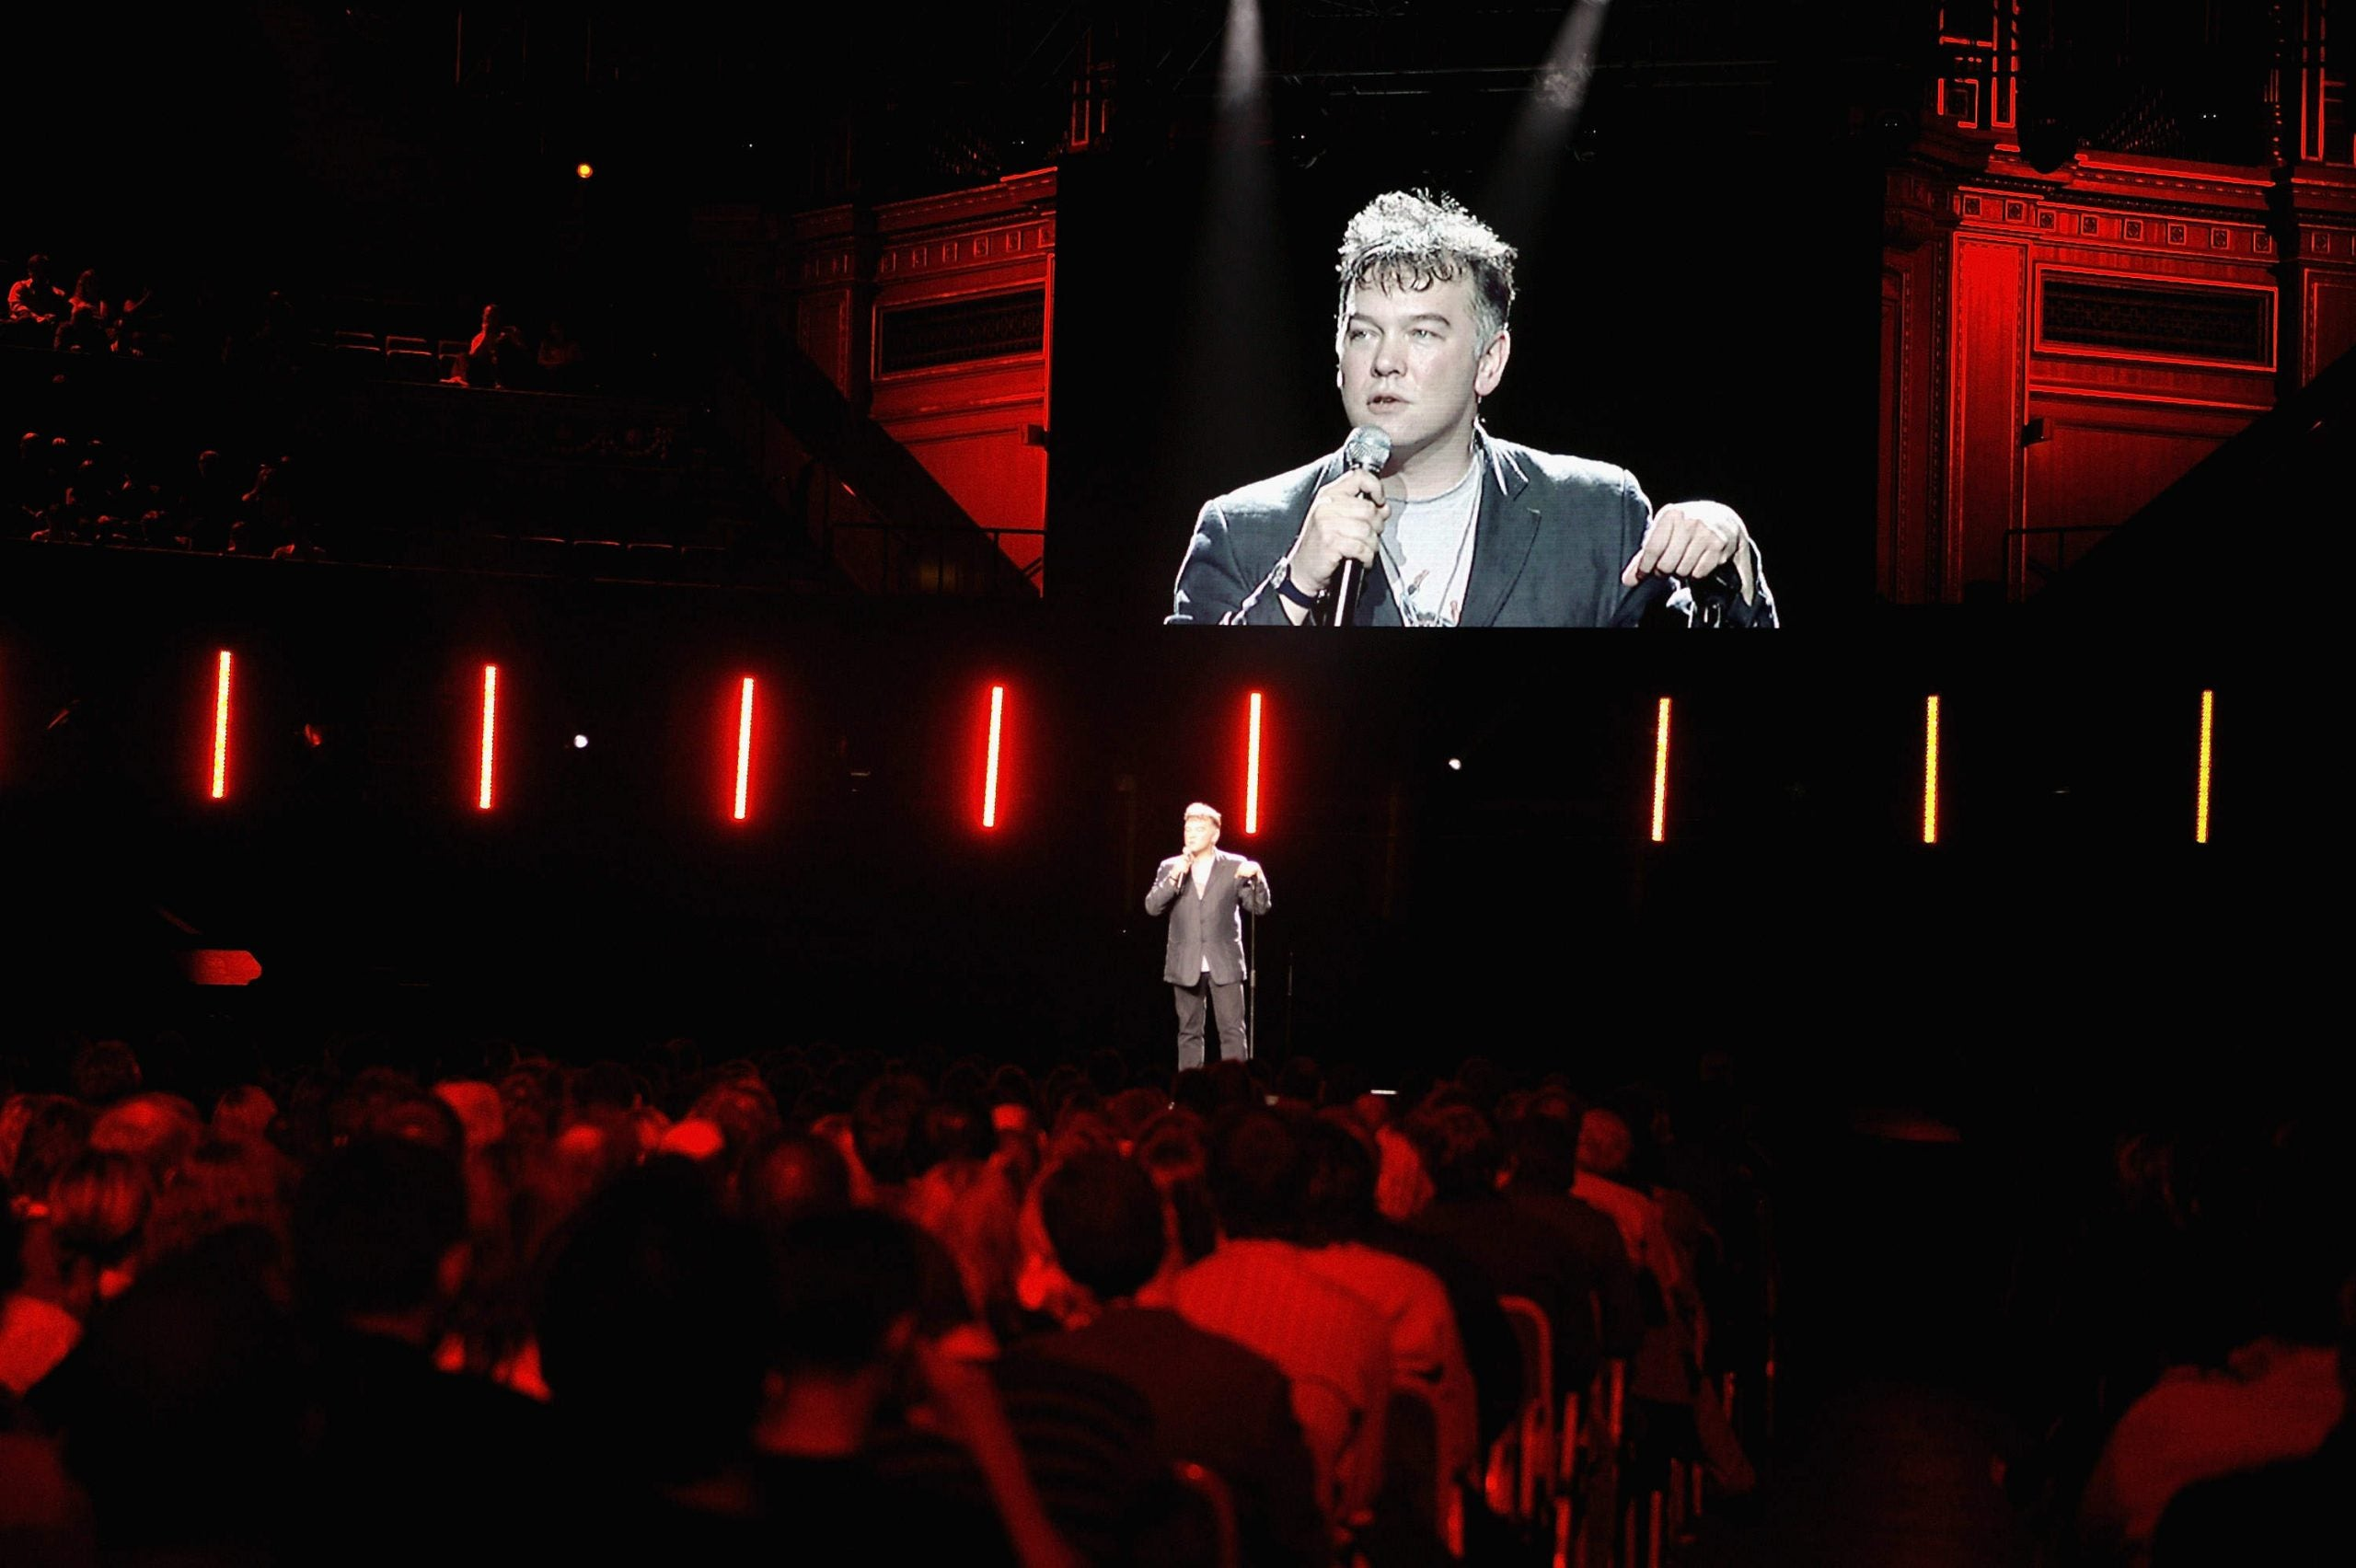 Most performers want their audiences to like them. I just want to be Stewart Lee